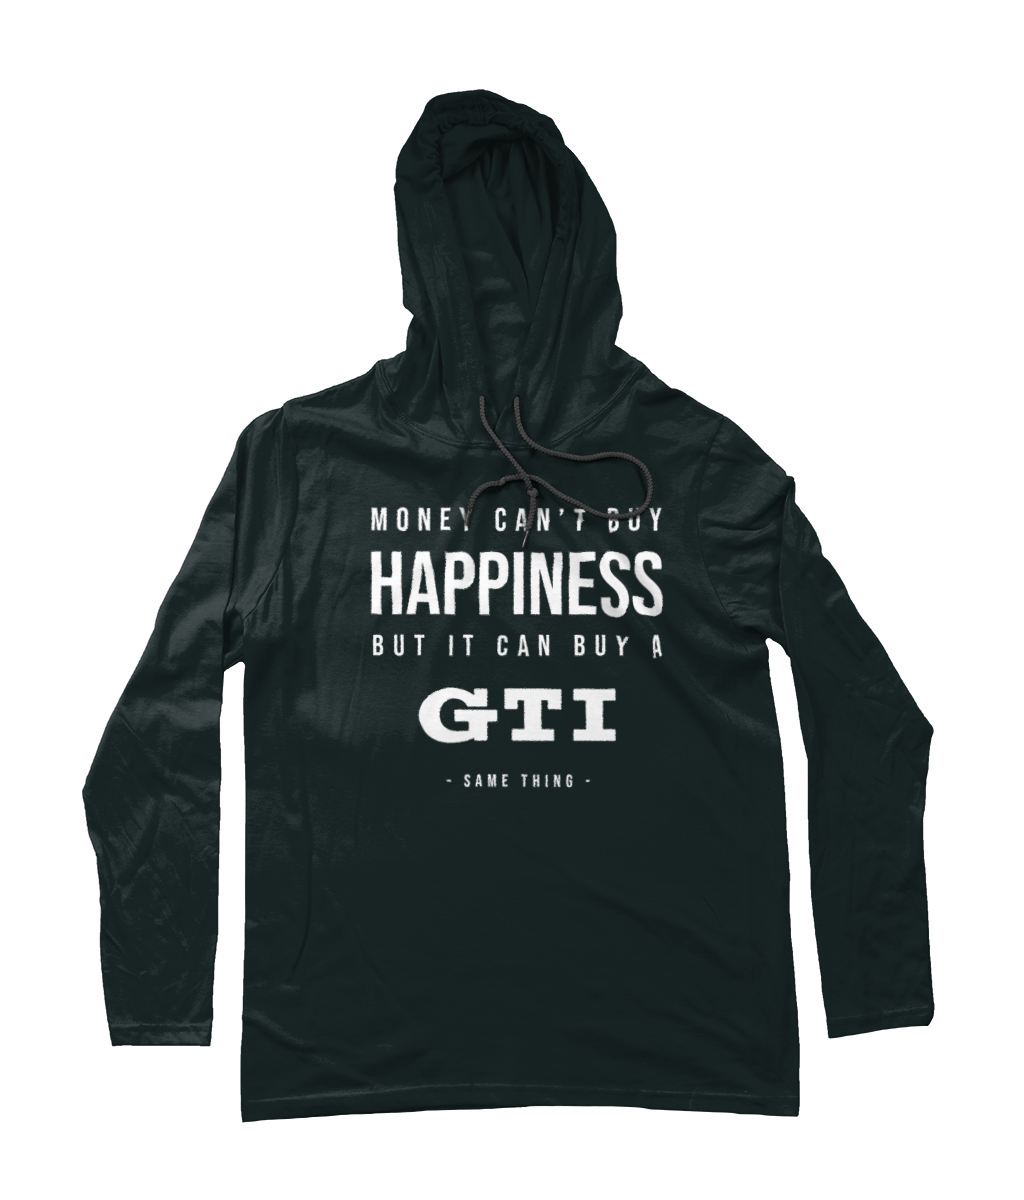 Happiness Hooded T-Shirt - GTI